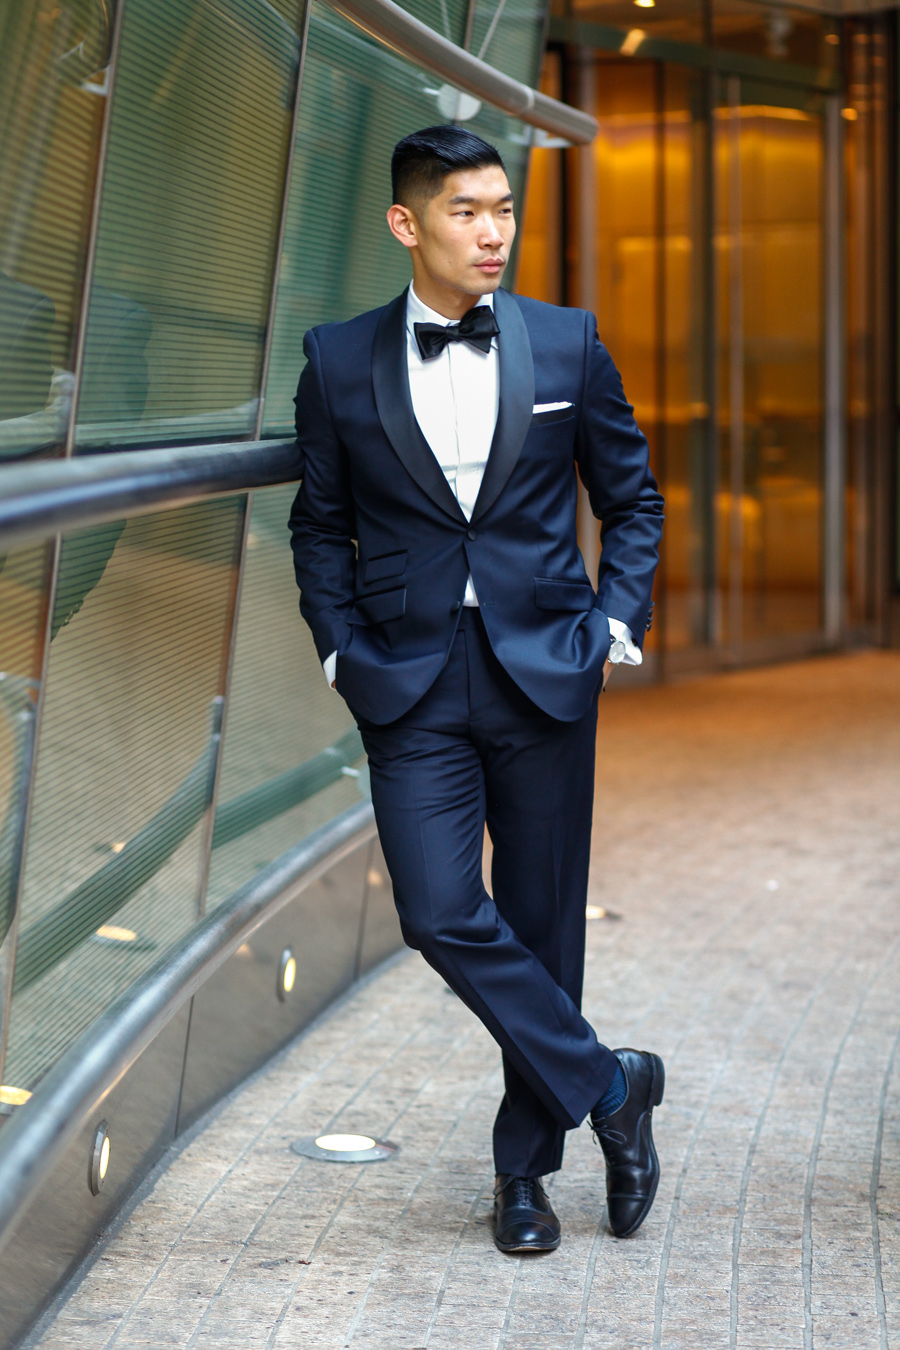 Levitate Style, Leo Chan, Alicia Mara, menswear, James Bond Tuxedo, Holiday Tuxedo, Combant Gent